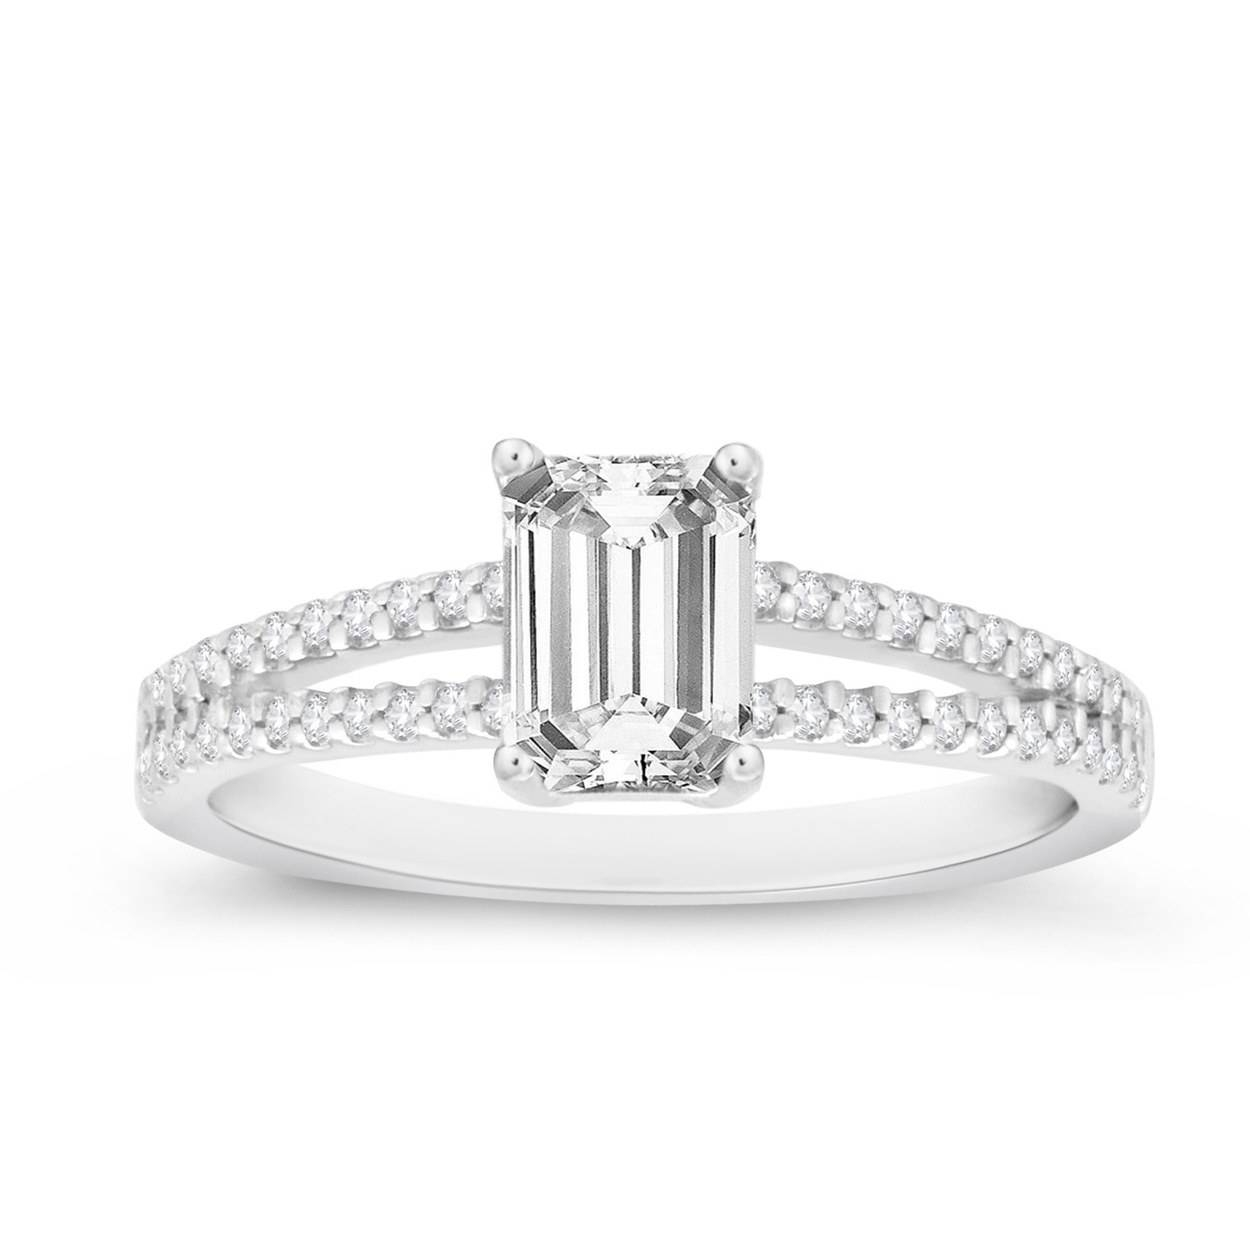 62 Diamond Engagement Rings Under $5,000 | Glamour Intended For White Emerald Engagement Rings (View 9 of 15)